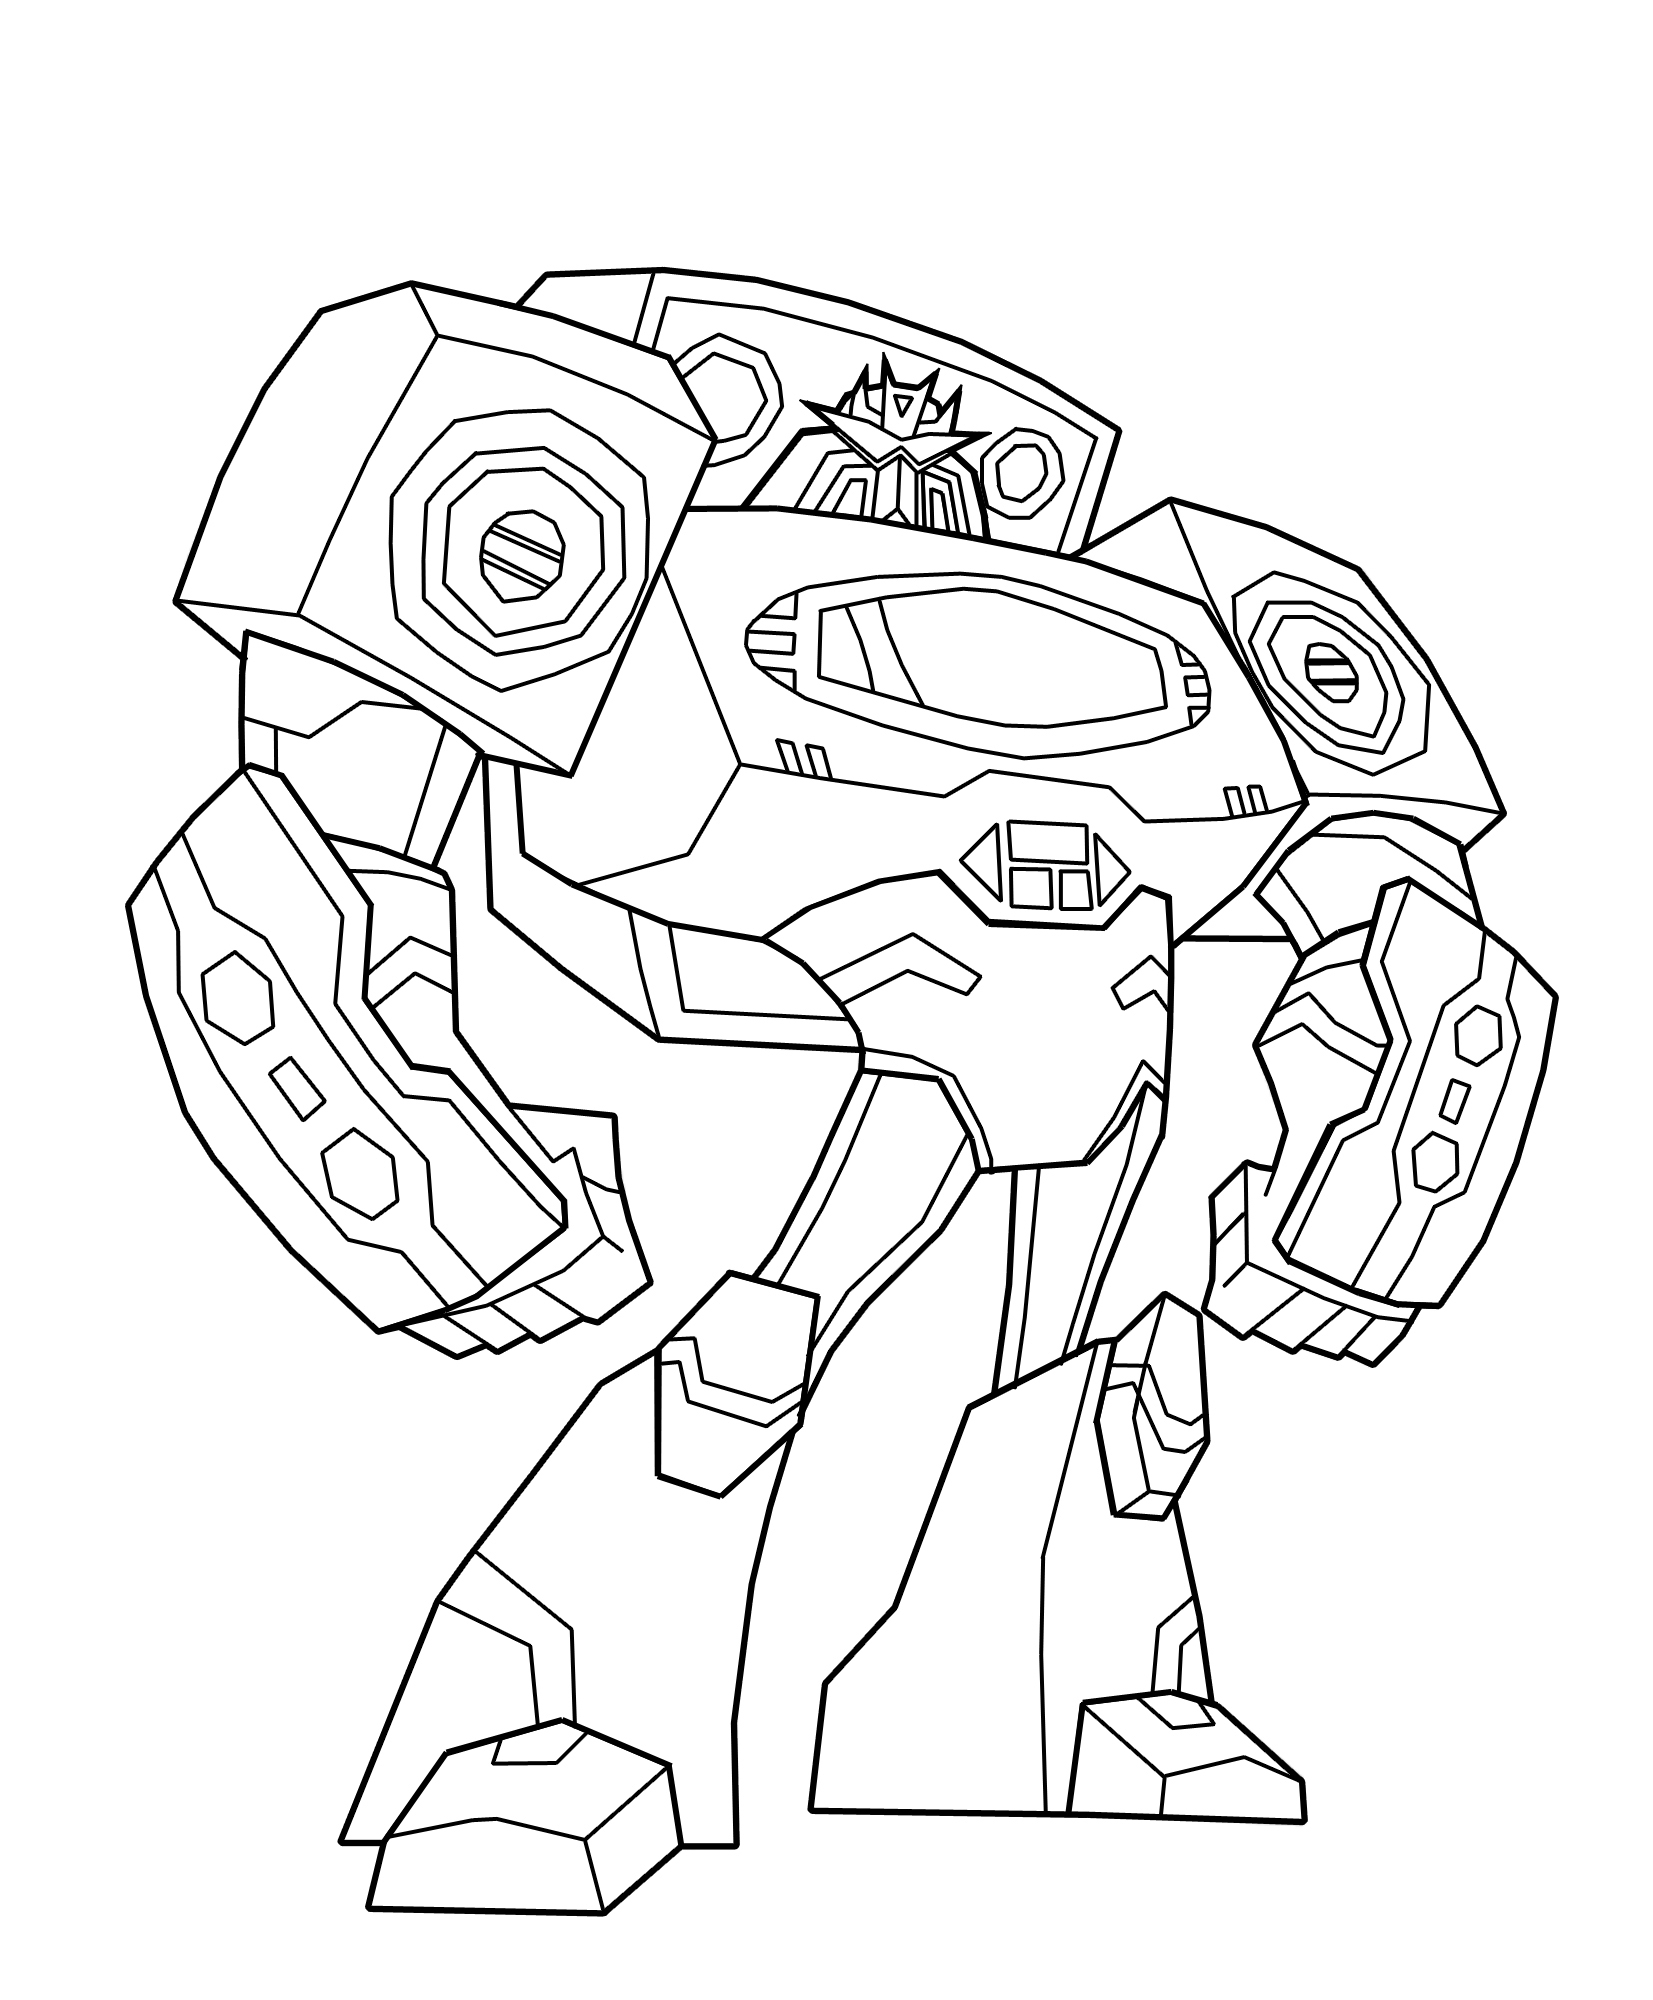 transformer coloring book transformers coloring pages free download on clipartmag coloring book transformer 1 1